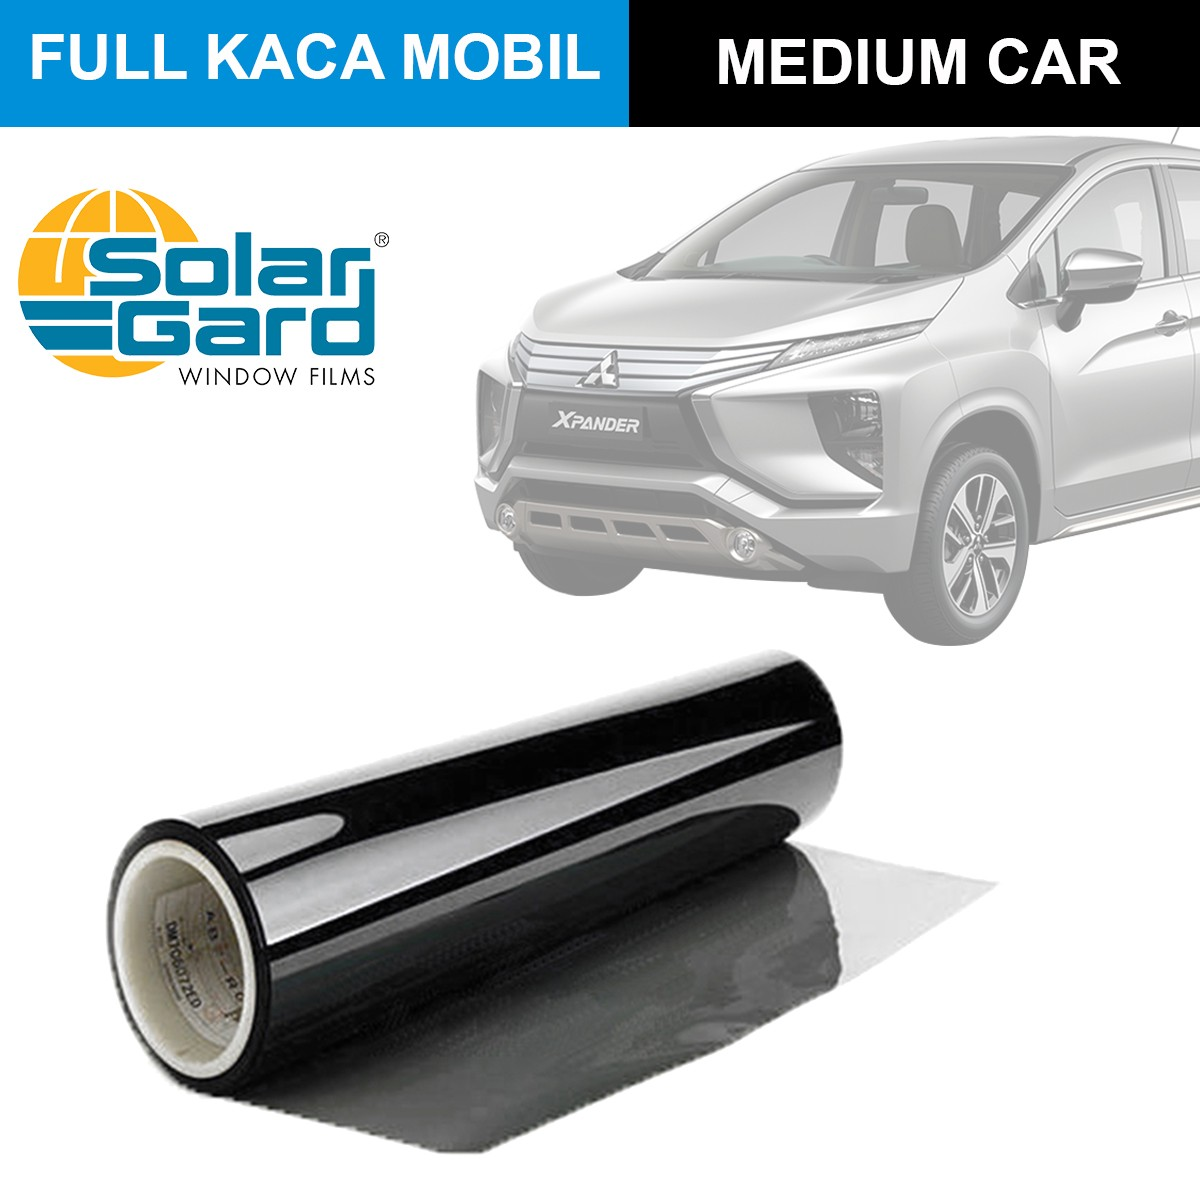 KACA FILM SOLAR GARD KOMBINASI LX + BLACK PHANTOM - (MEDIUM CAR) FULL KACA